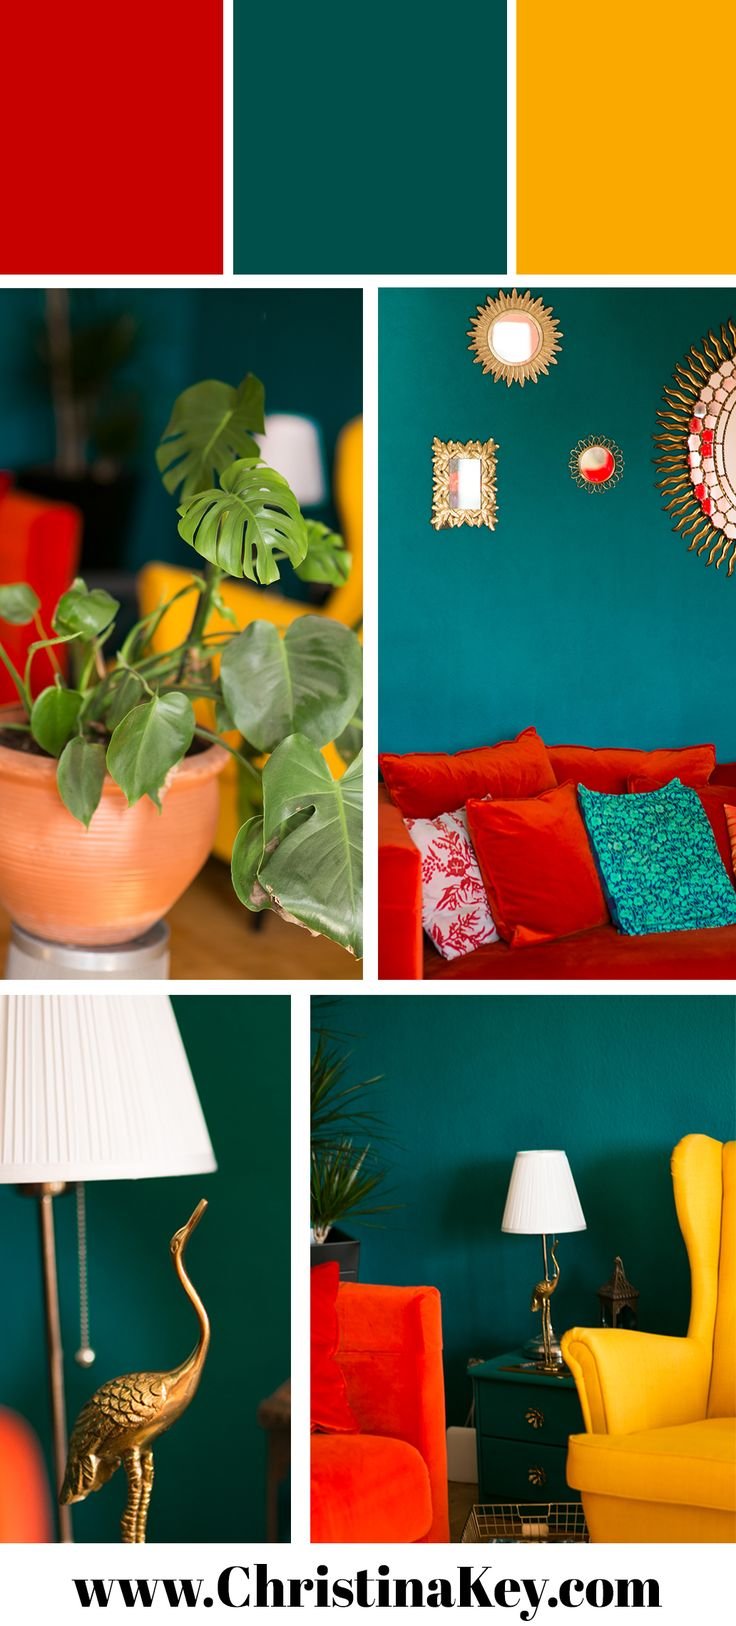 Die besten 25 rote sofas ideen auf pinterest roter sofa for Roter ohrensessel